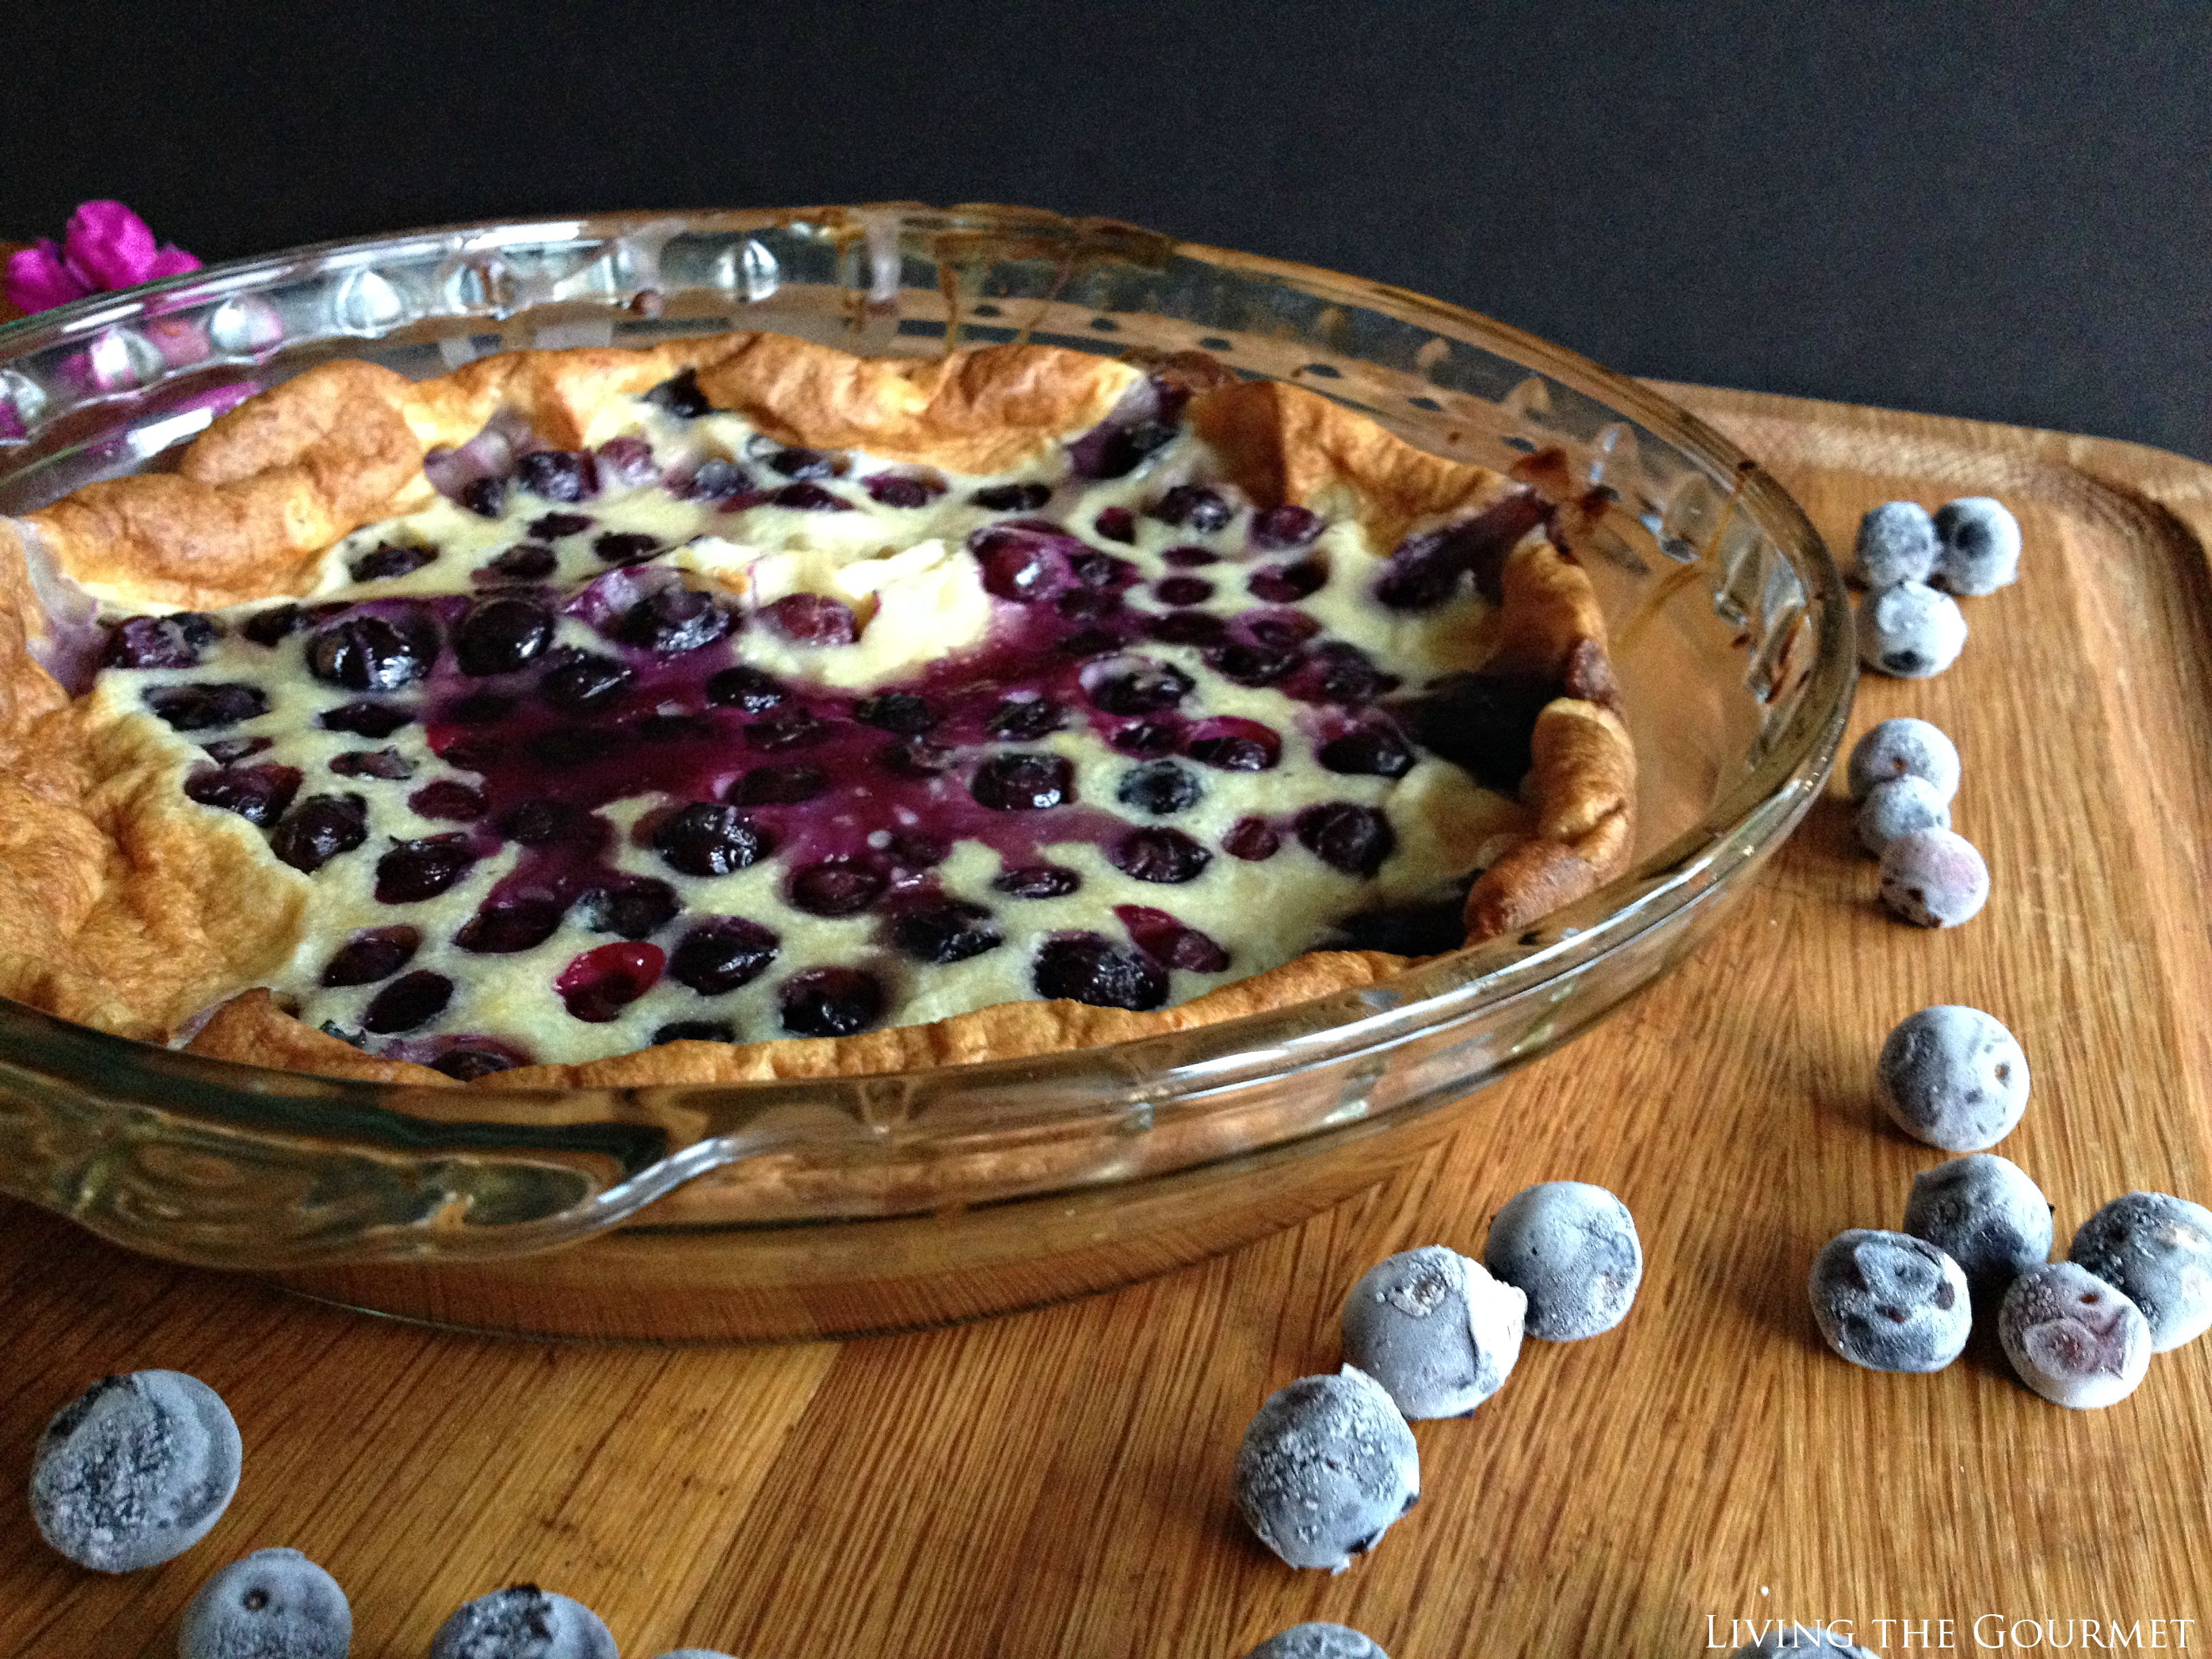 Living the Gourmet: Blueberry Clafoutis